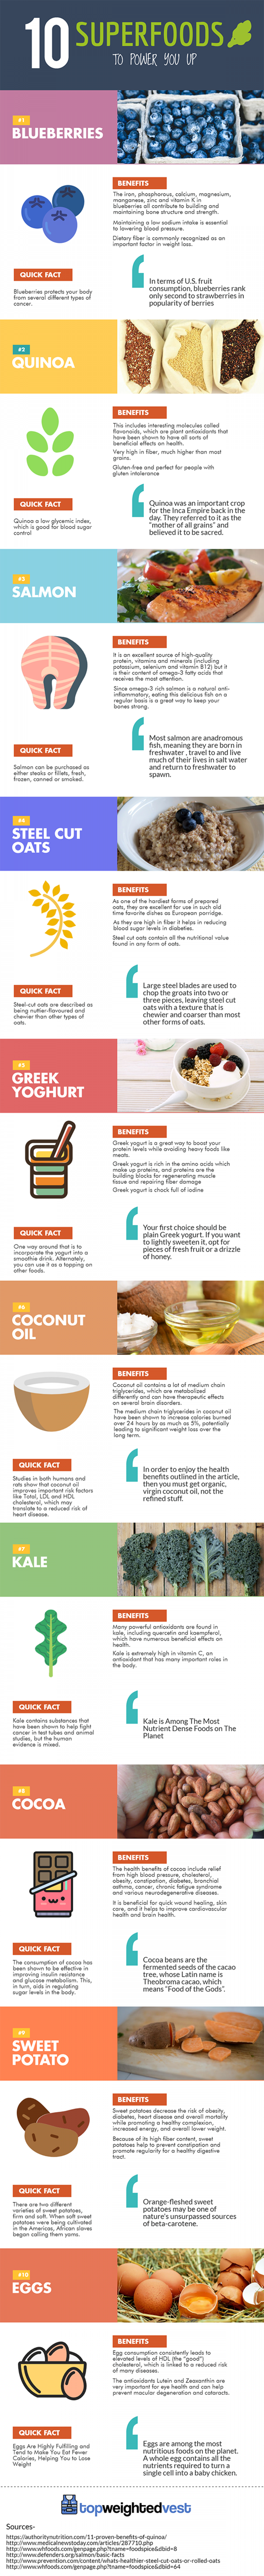 Top 10 Superp SuperFoods to Power you Up in 2016 Infographic